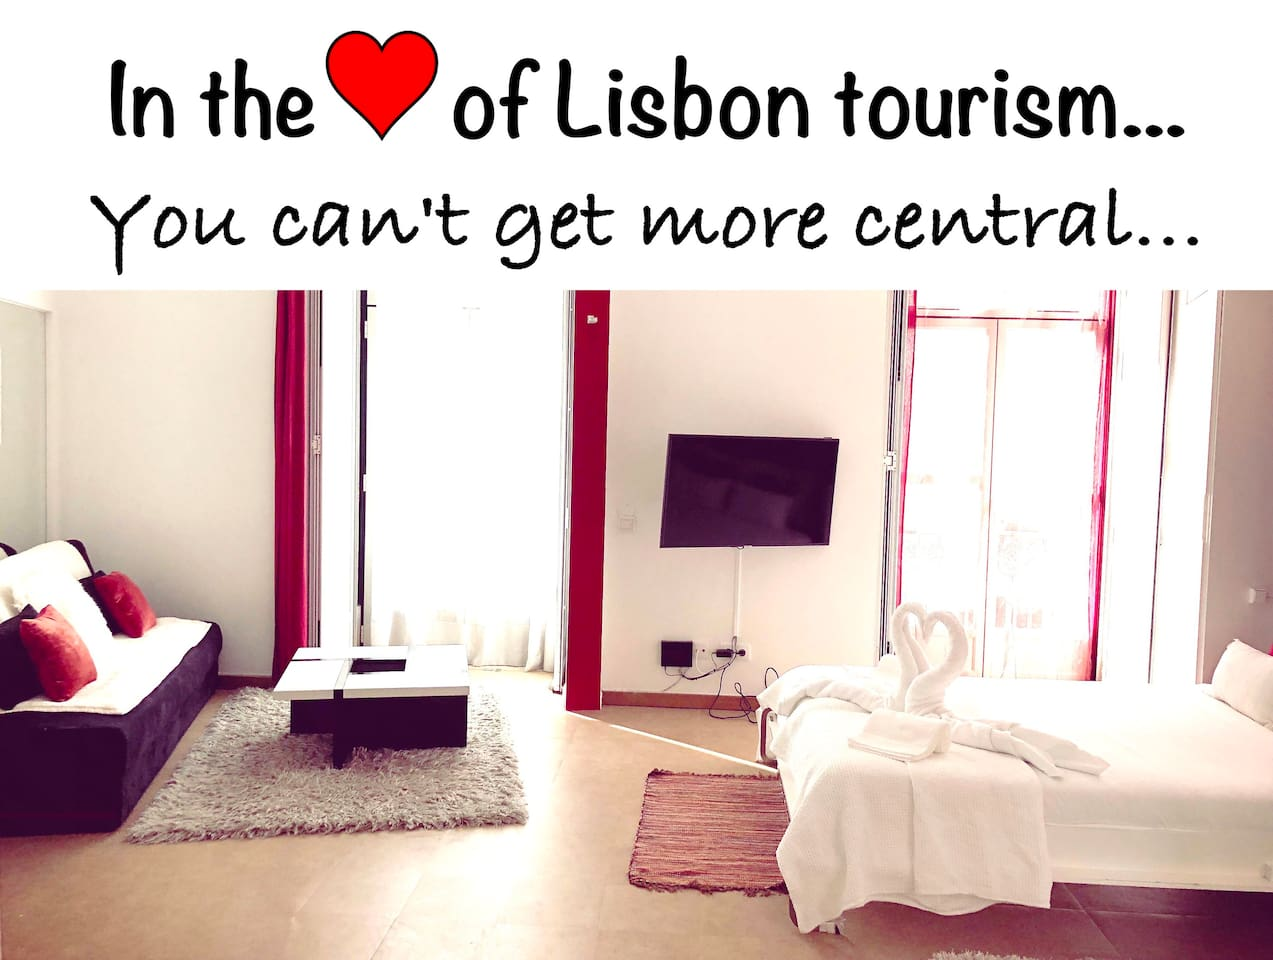 We are in the heart of Lisbon tourism... you can't get any more central. Open the balcony to see the movement on the street... hear the sound of street musicians and the bustle of people... feel Lisbon's beating heart from your home...